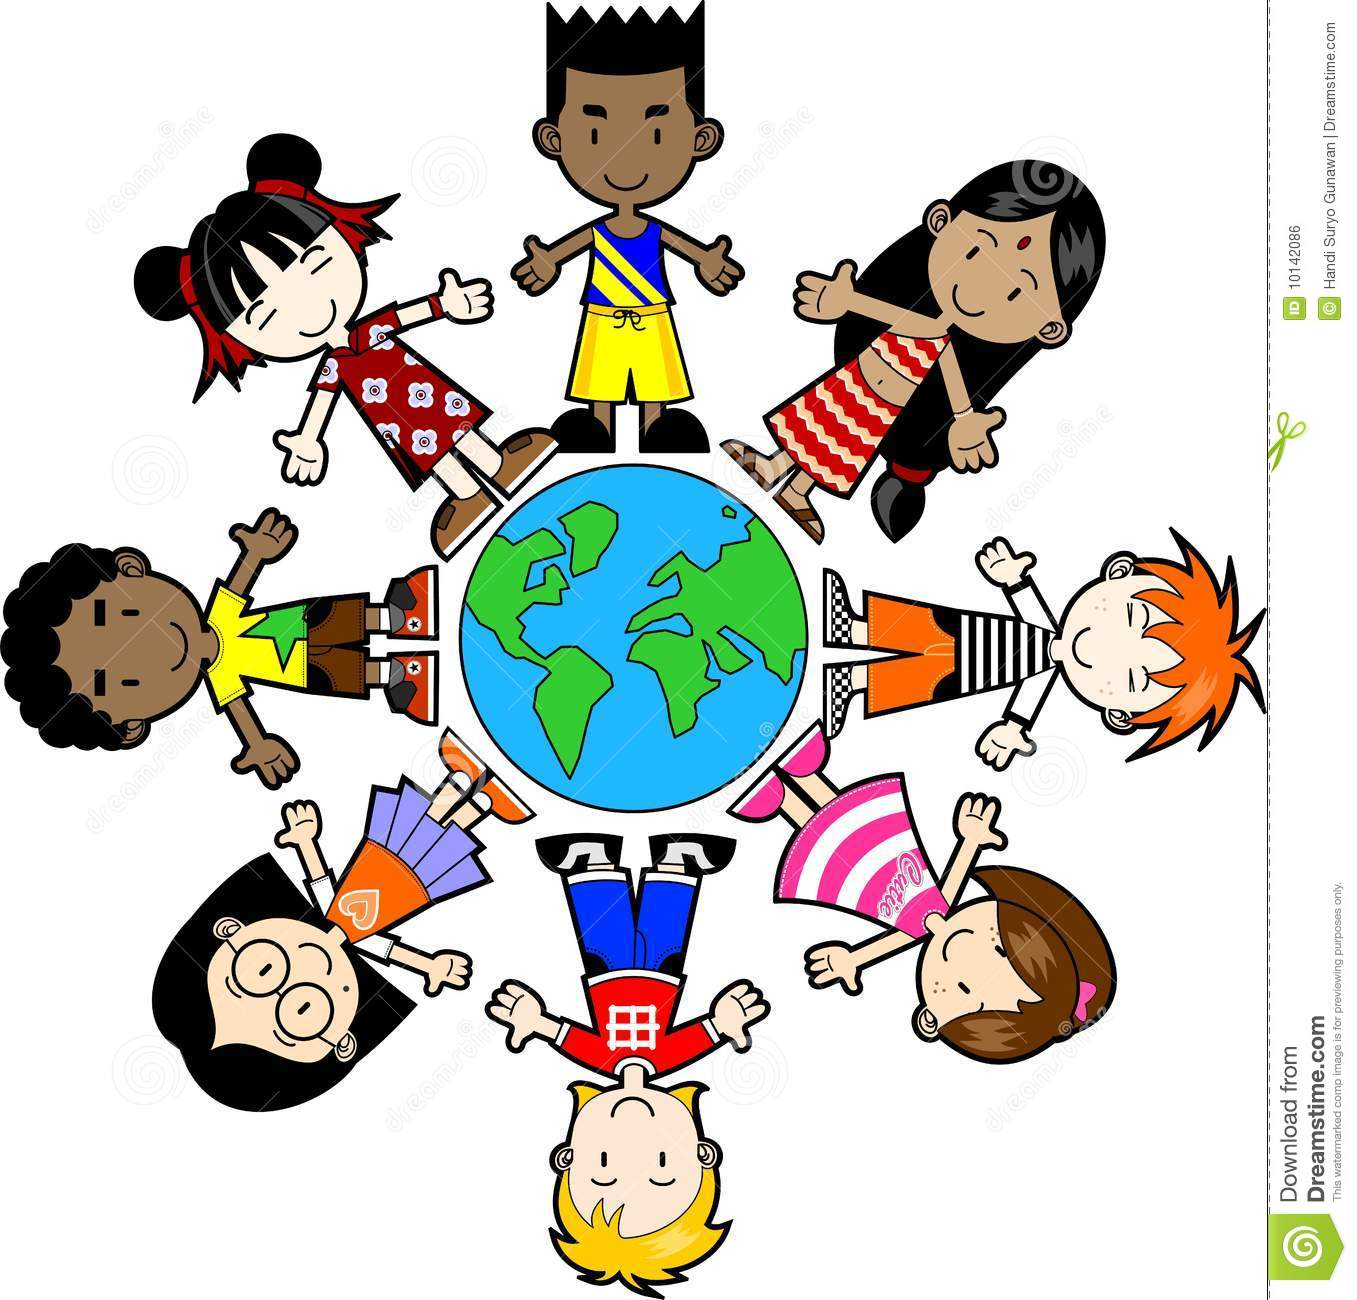 children around the world clipart clipart panda free clipart images rh clipartpanda com Travel around the World Clip Art Multicultural Clip Art From around the World